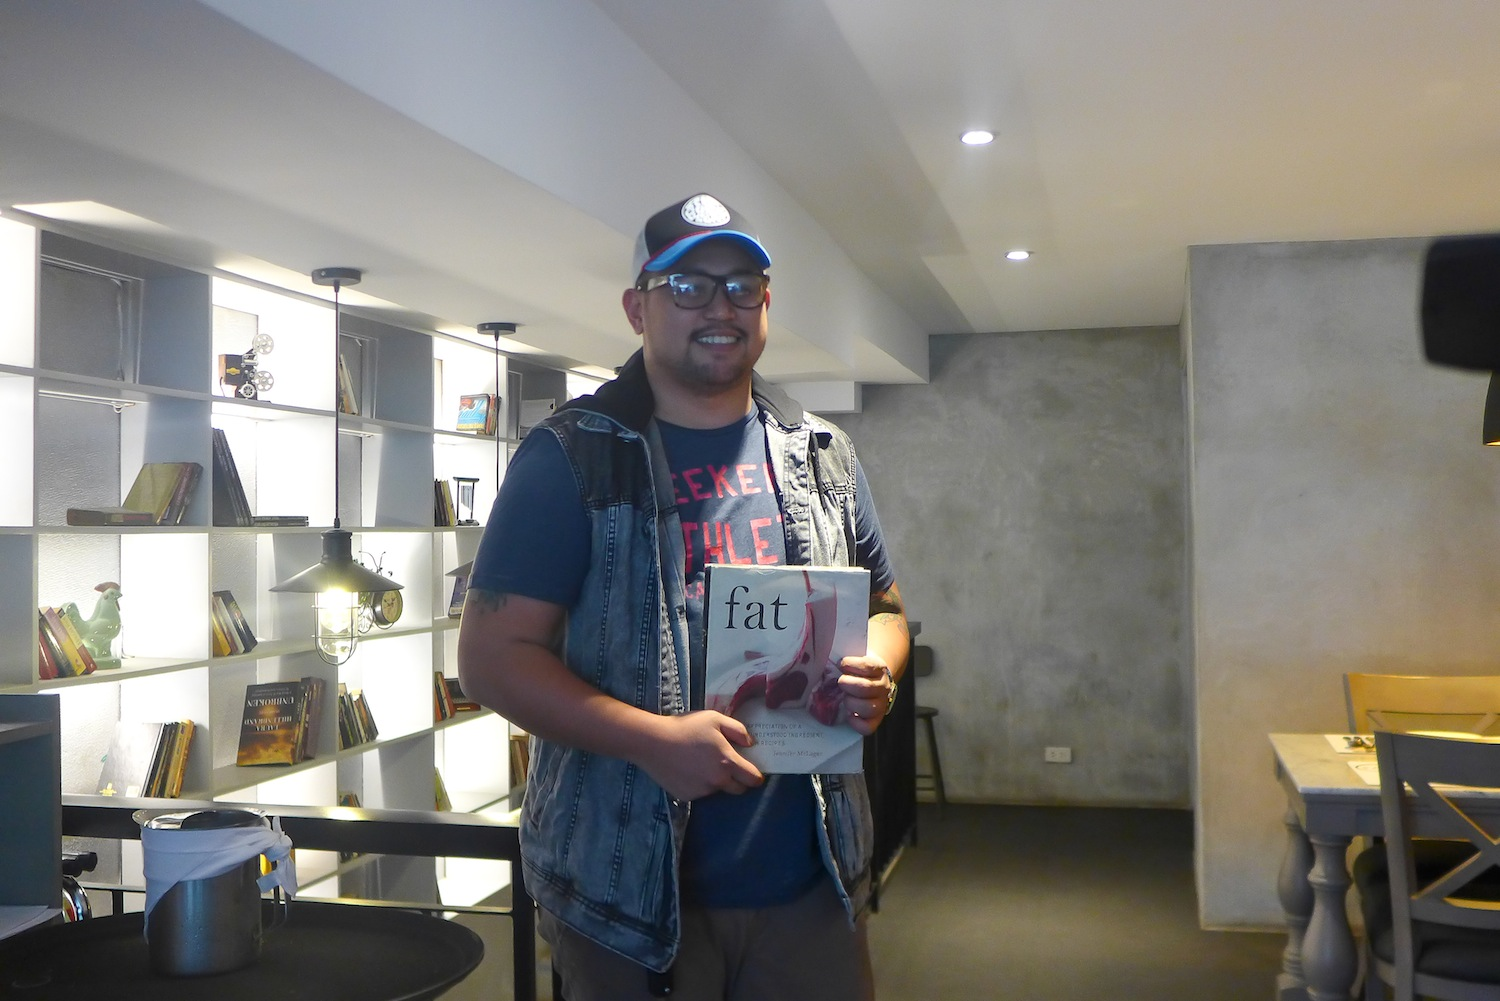 Chef Kel Zaguirre holding the coffee-table book that sparked it all.